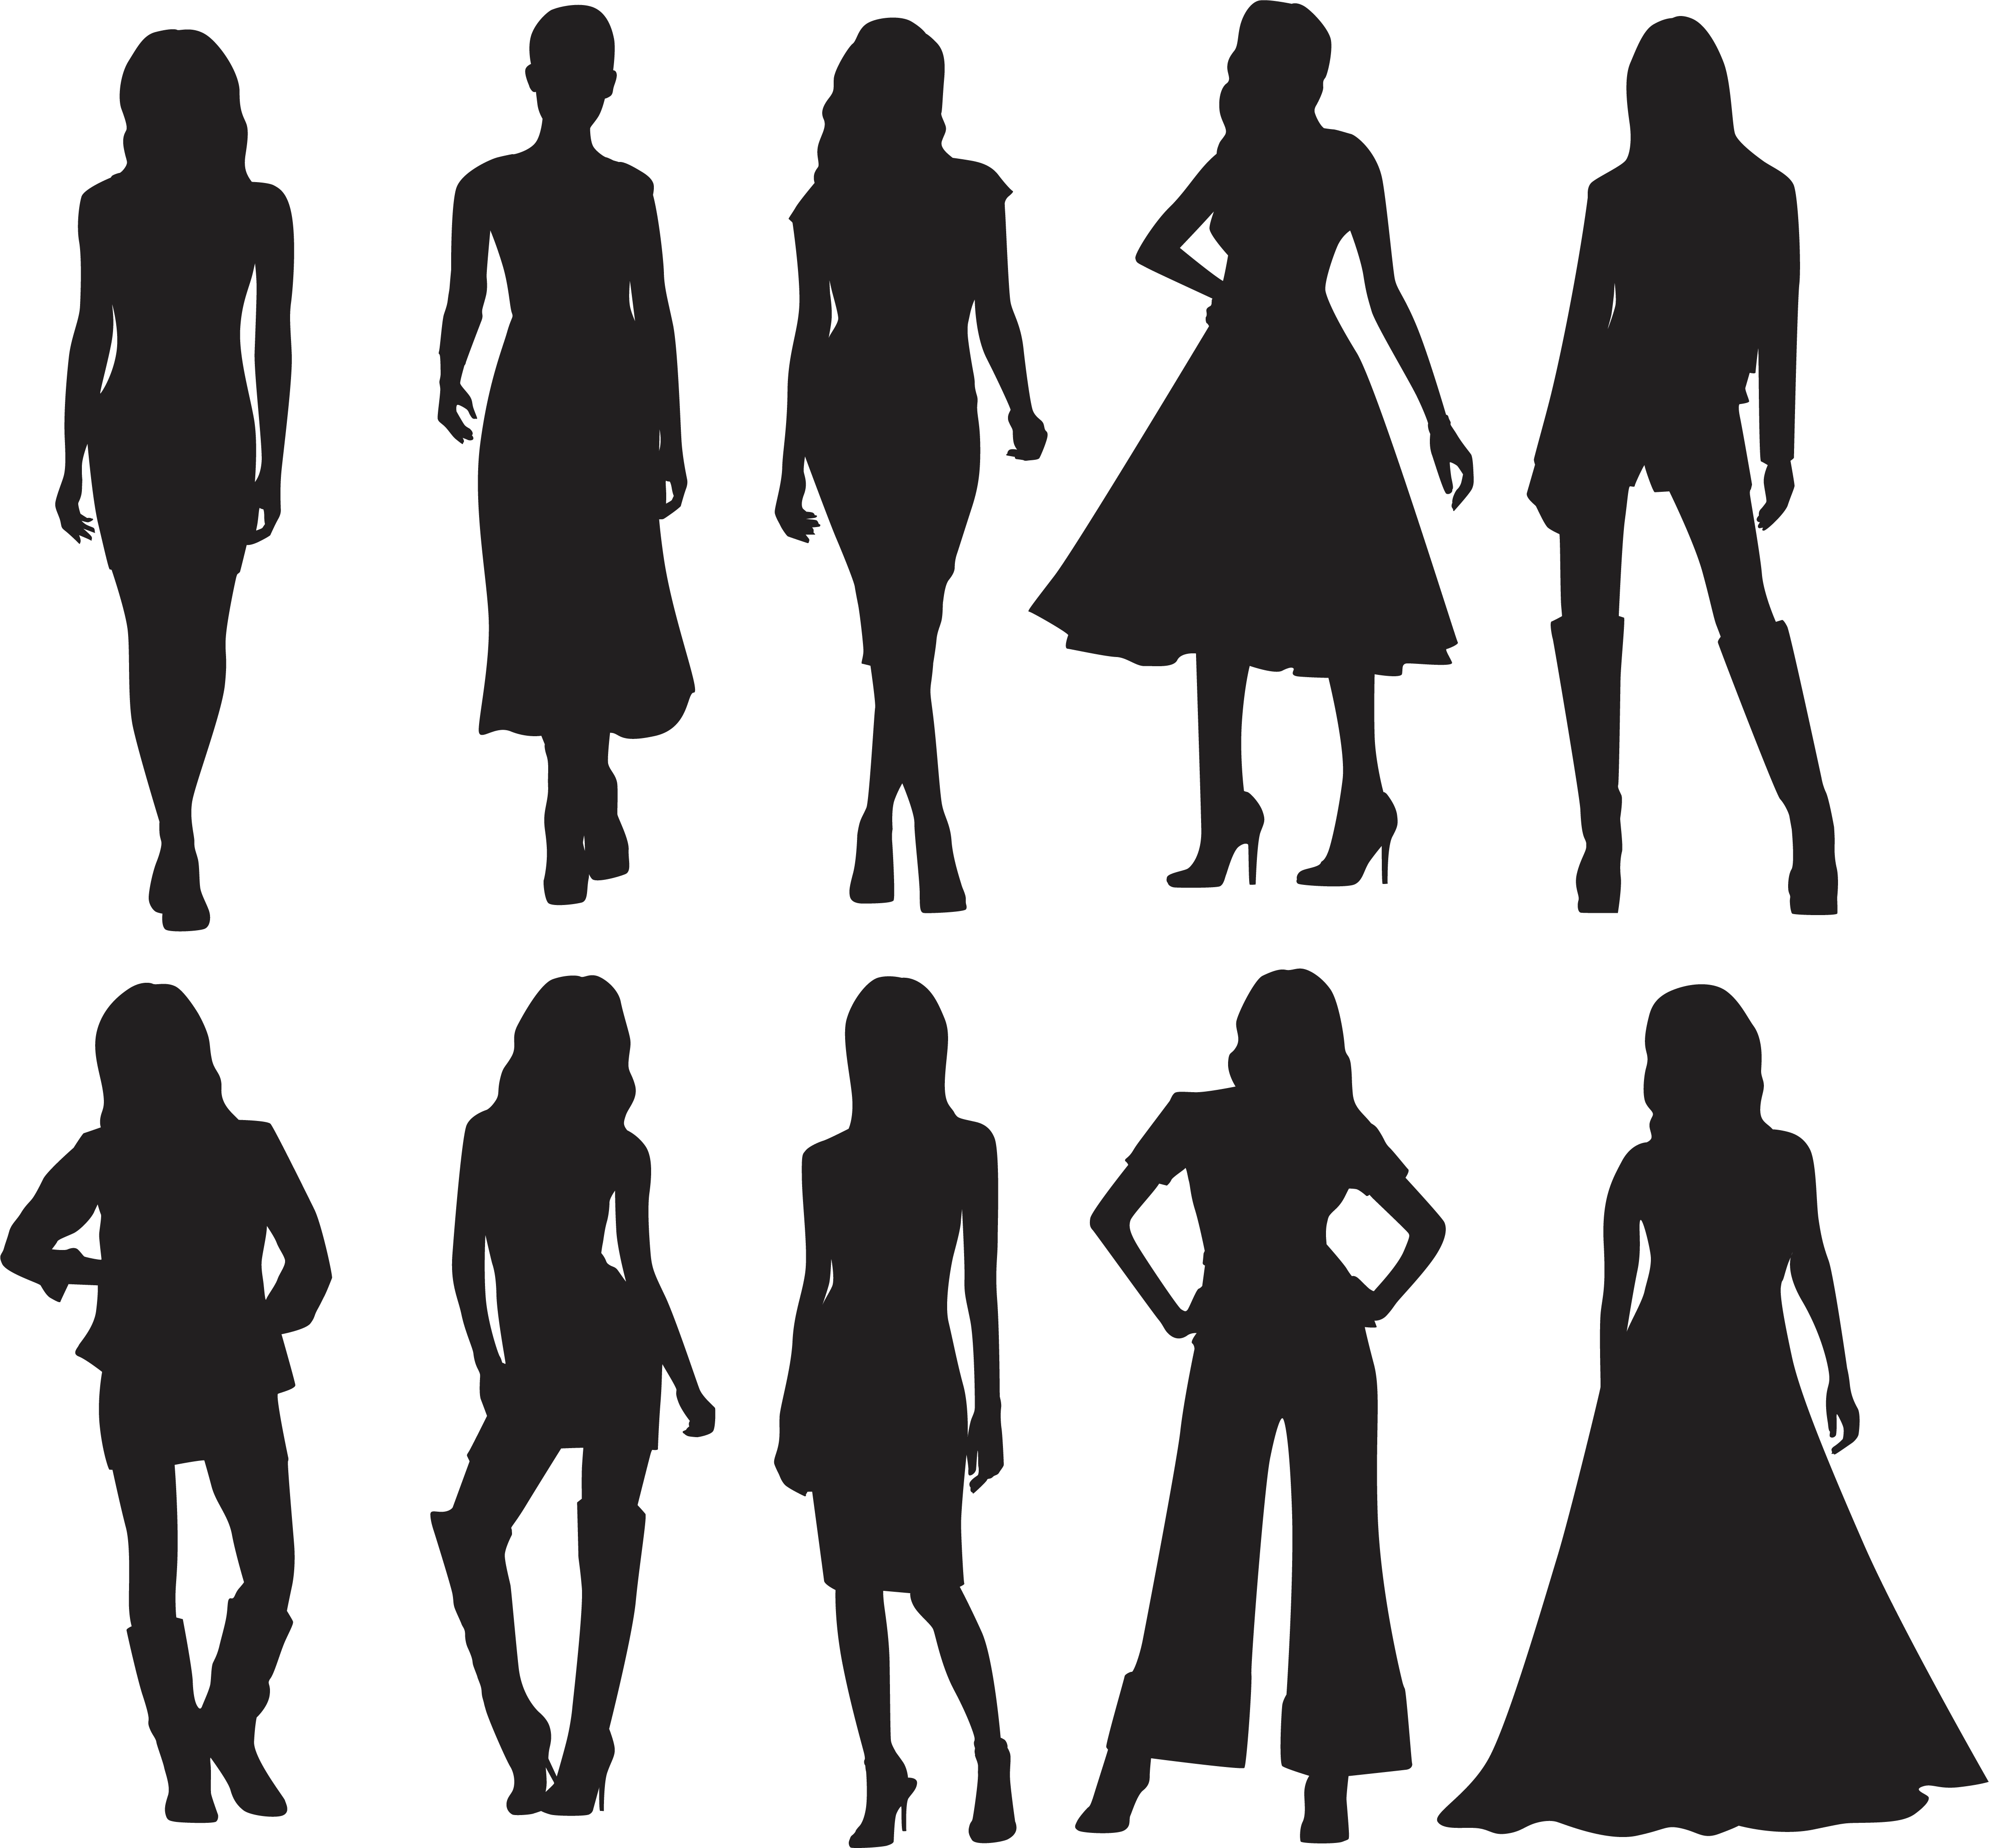 Fashion Model Silhouette At GetDrawings